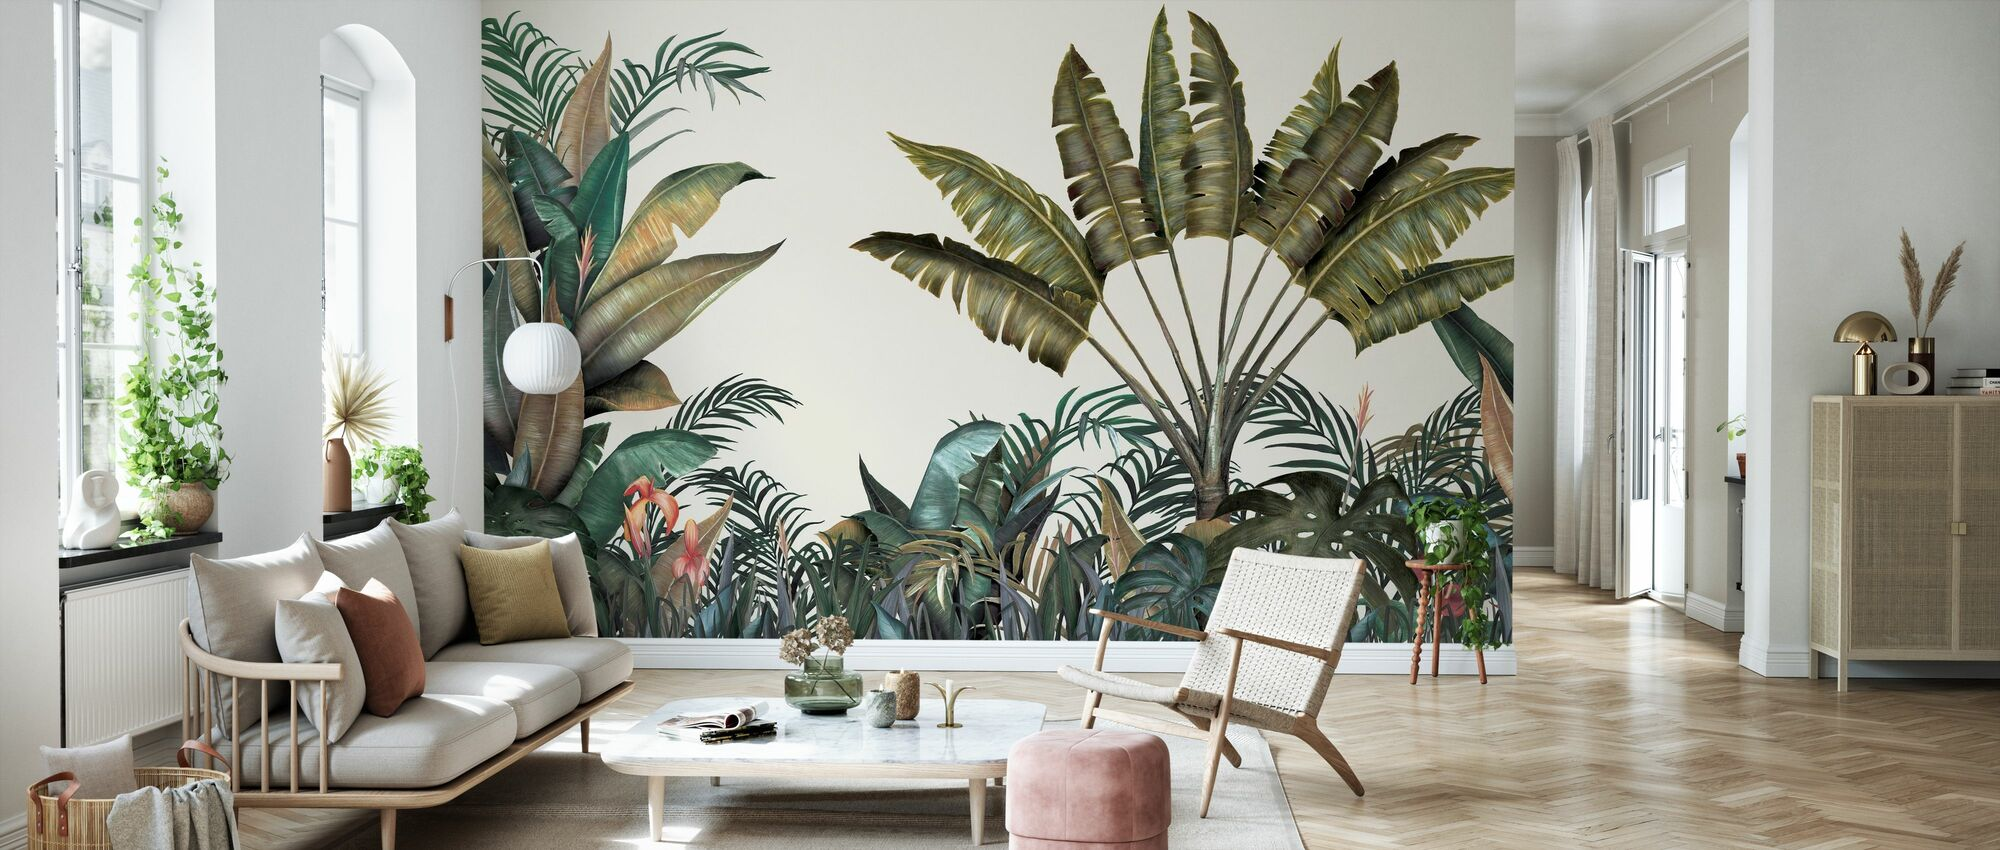 Tropical - Large Leaves - Wallpaper - Living Room